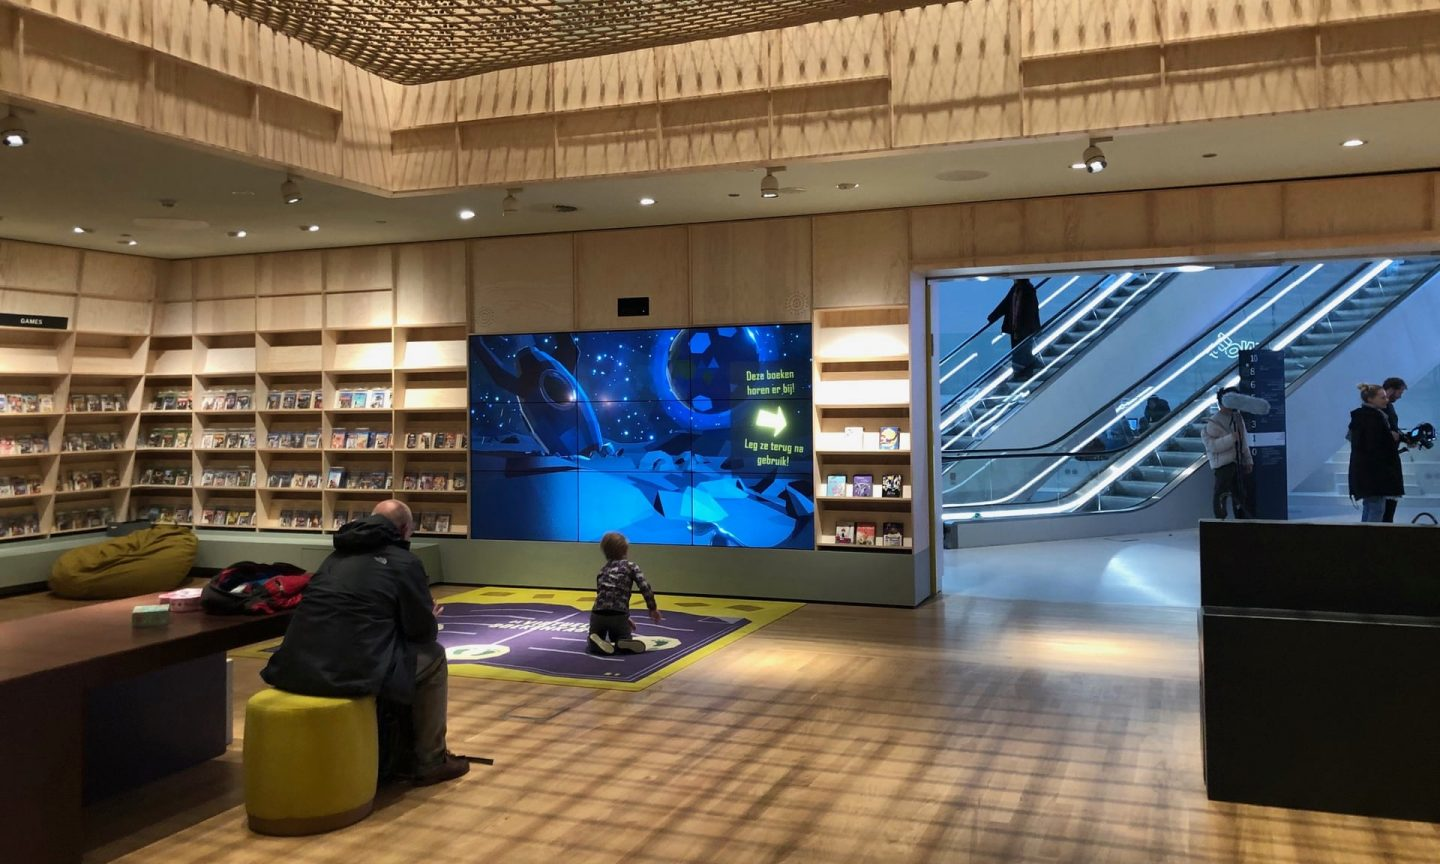 The new-look shopping mall that doesn't sell stuff